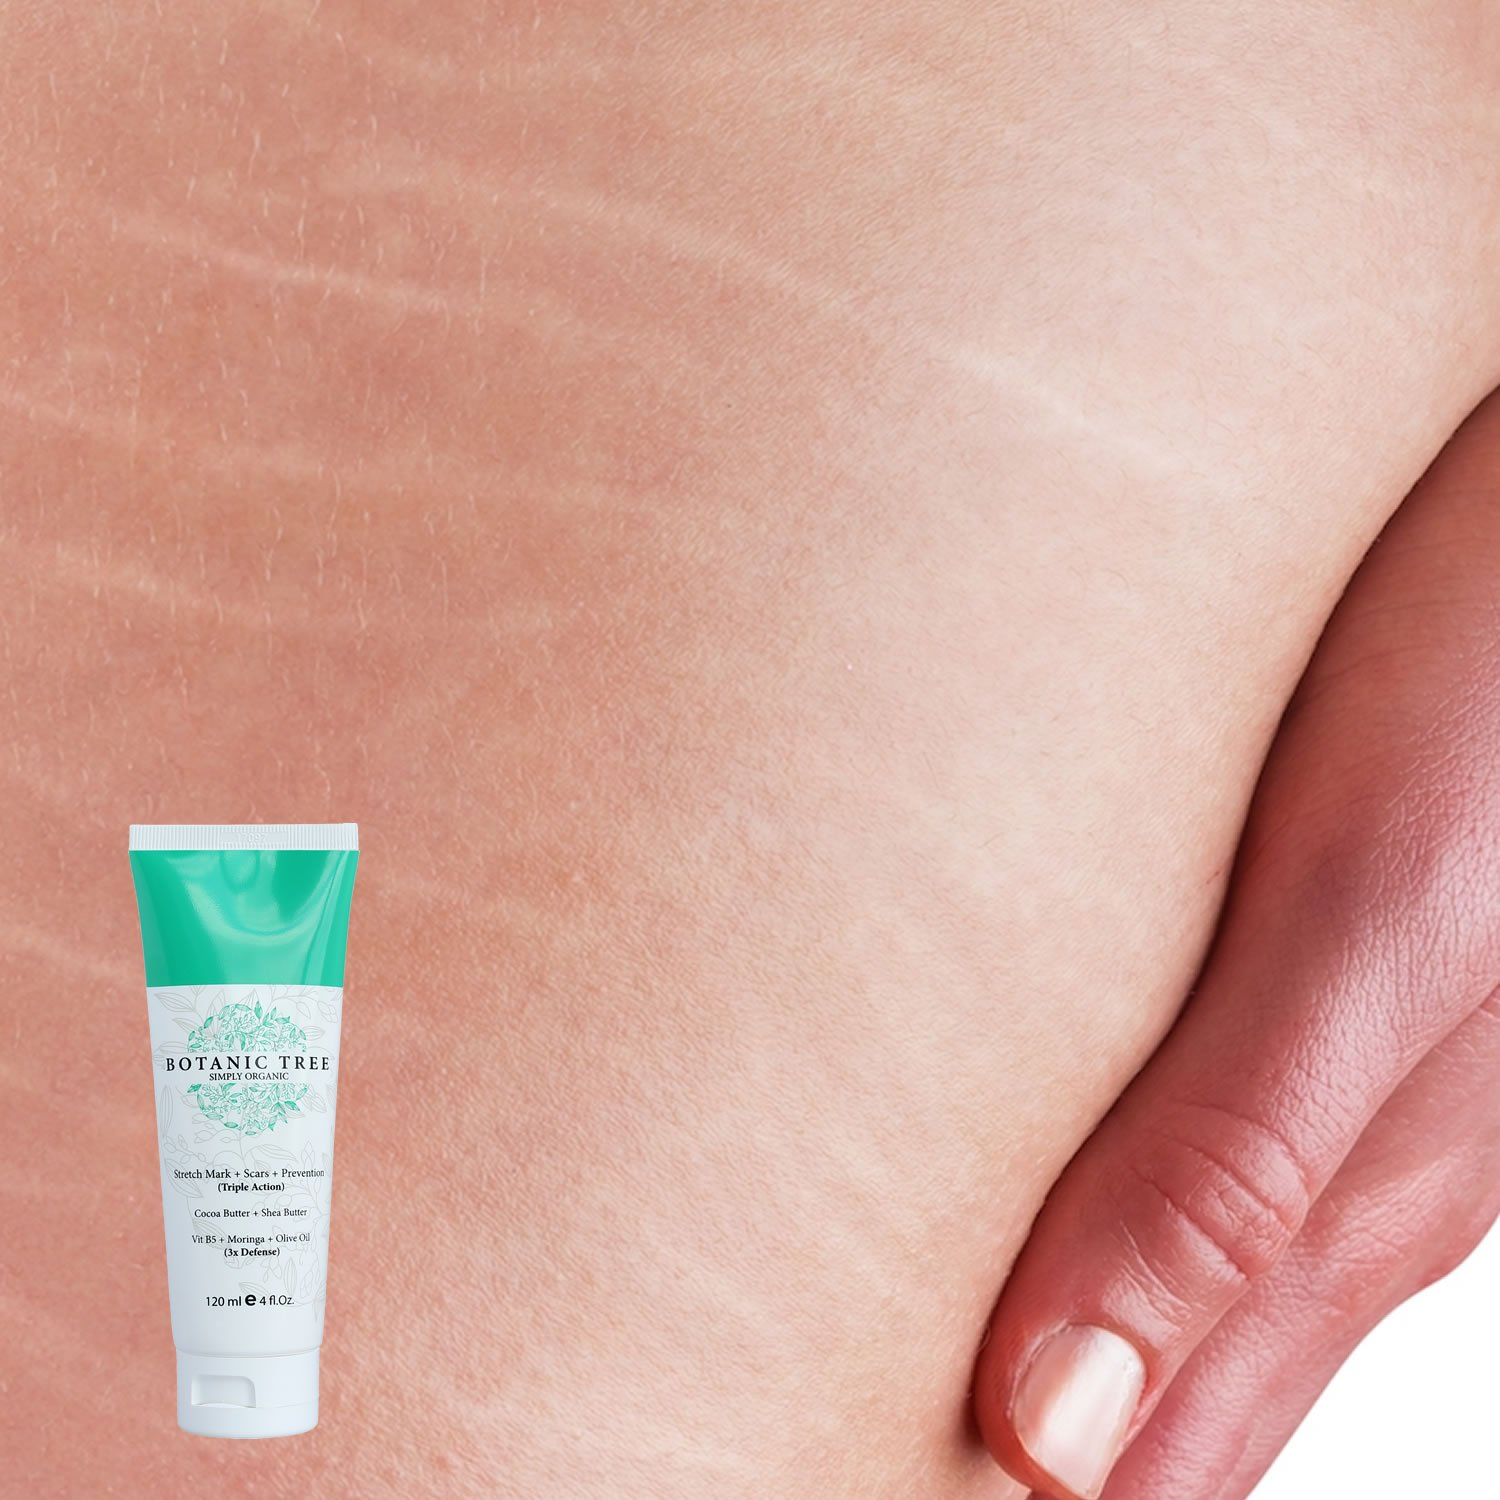 how to help decrease stretch marks